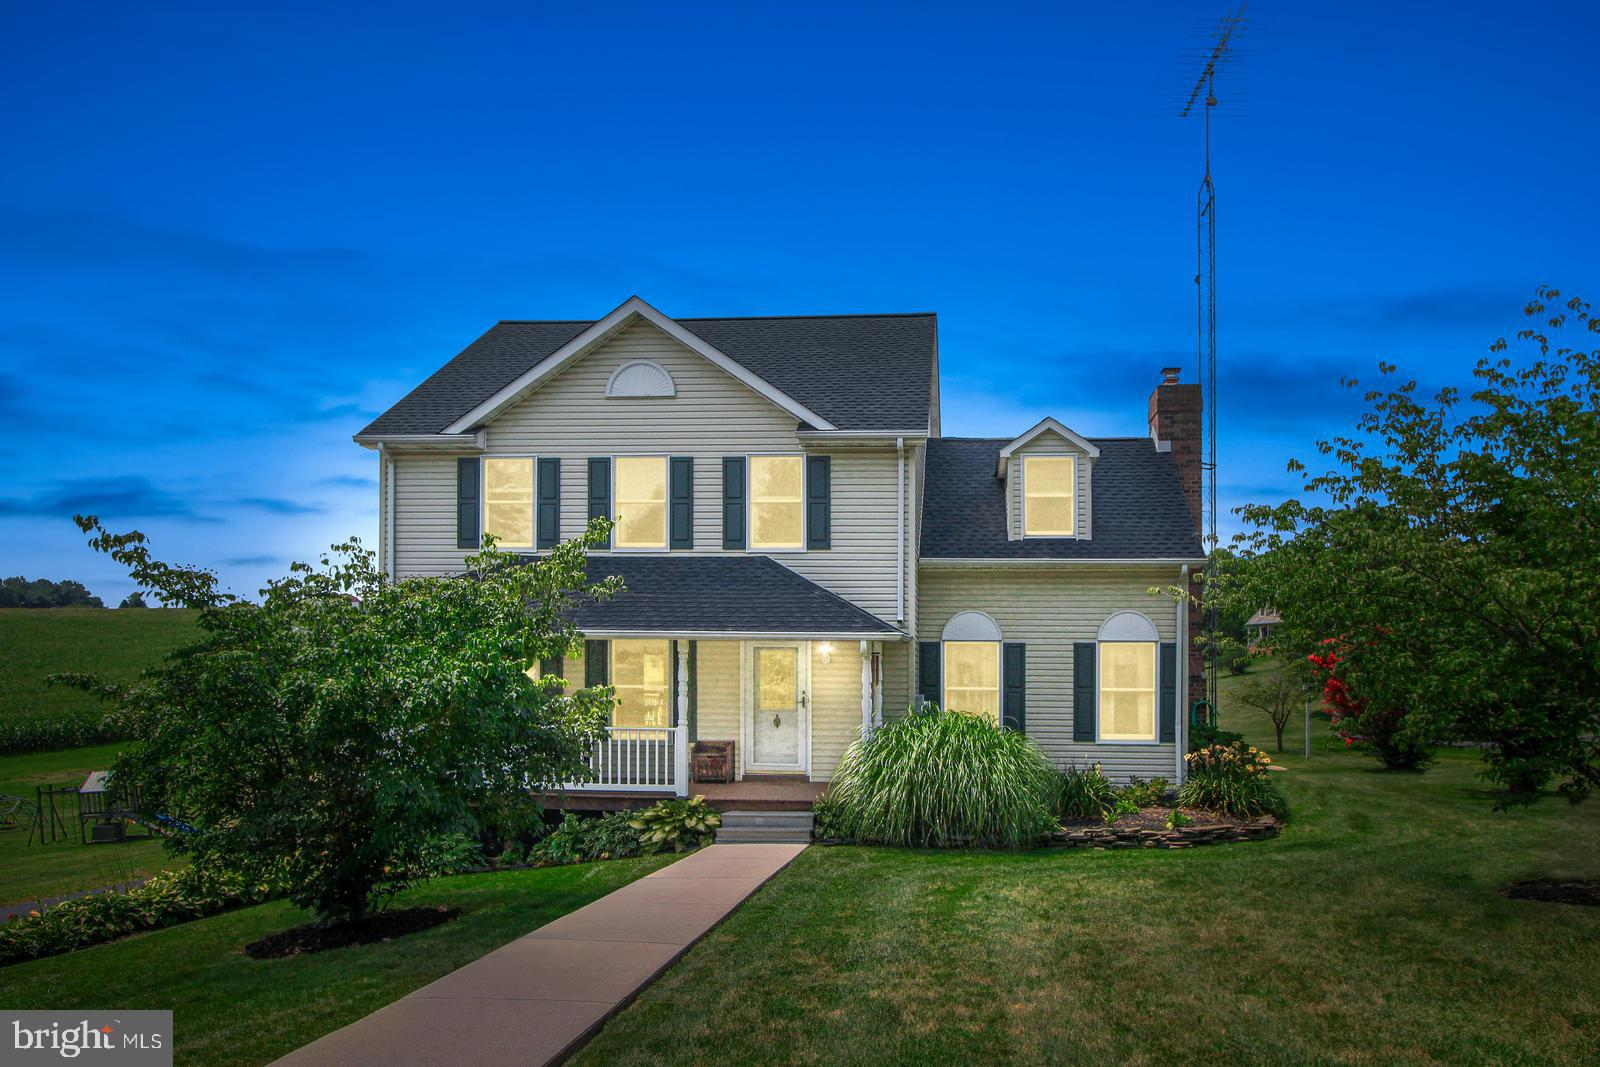 1312 FAWN GROVE ROAD, NEW PARK, PA 17352